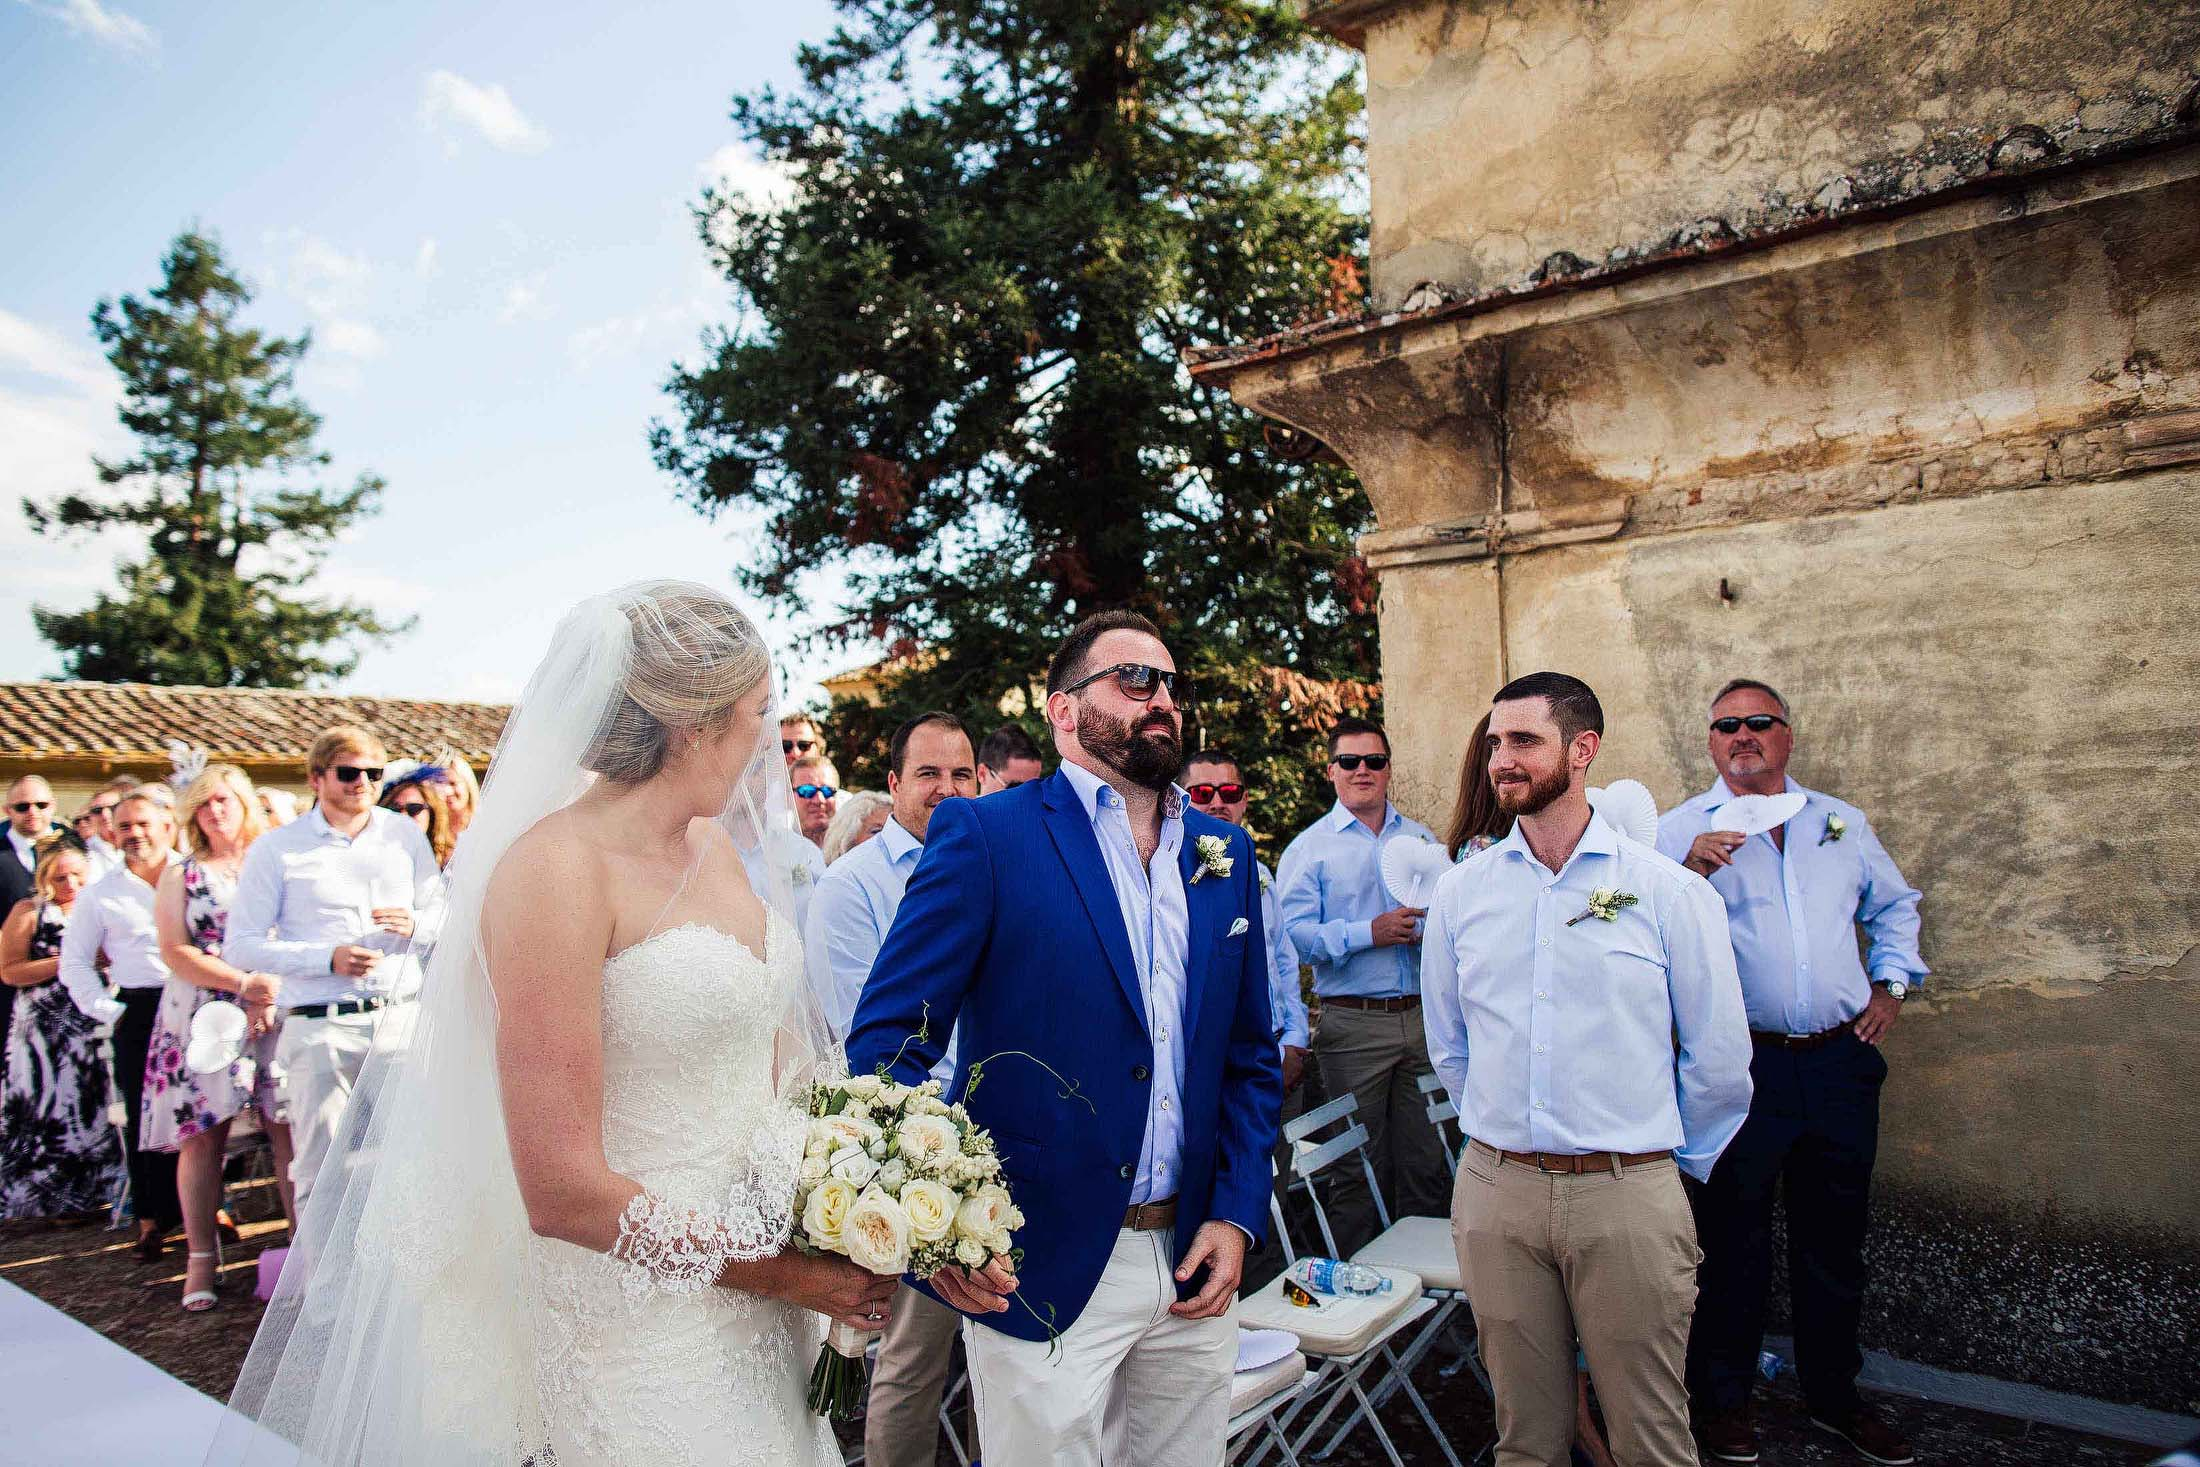 Villa Medicea di Lilliano wedding